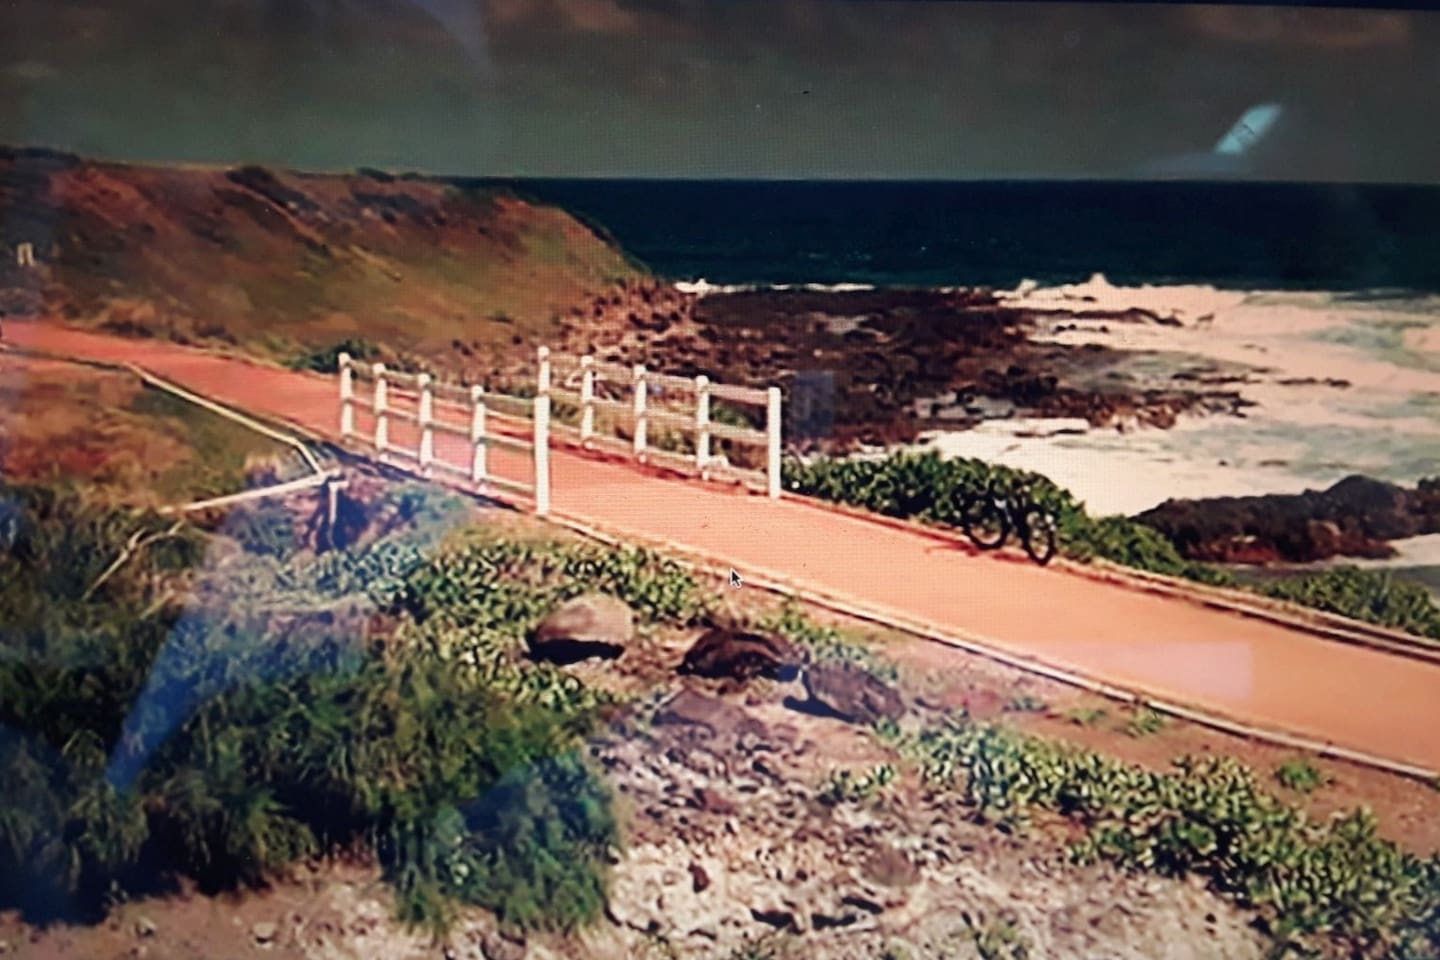 Aloha! A welcoming veiw of the famous Kauai bike path accross the street from your airbnb. Easy access to paradise.